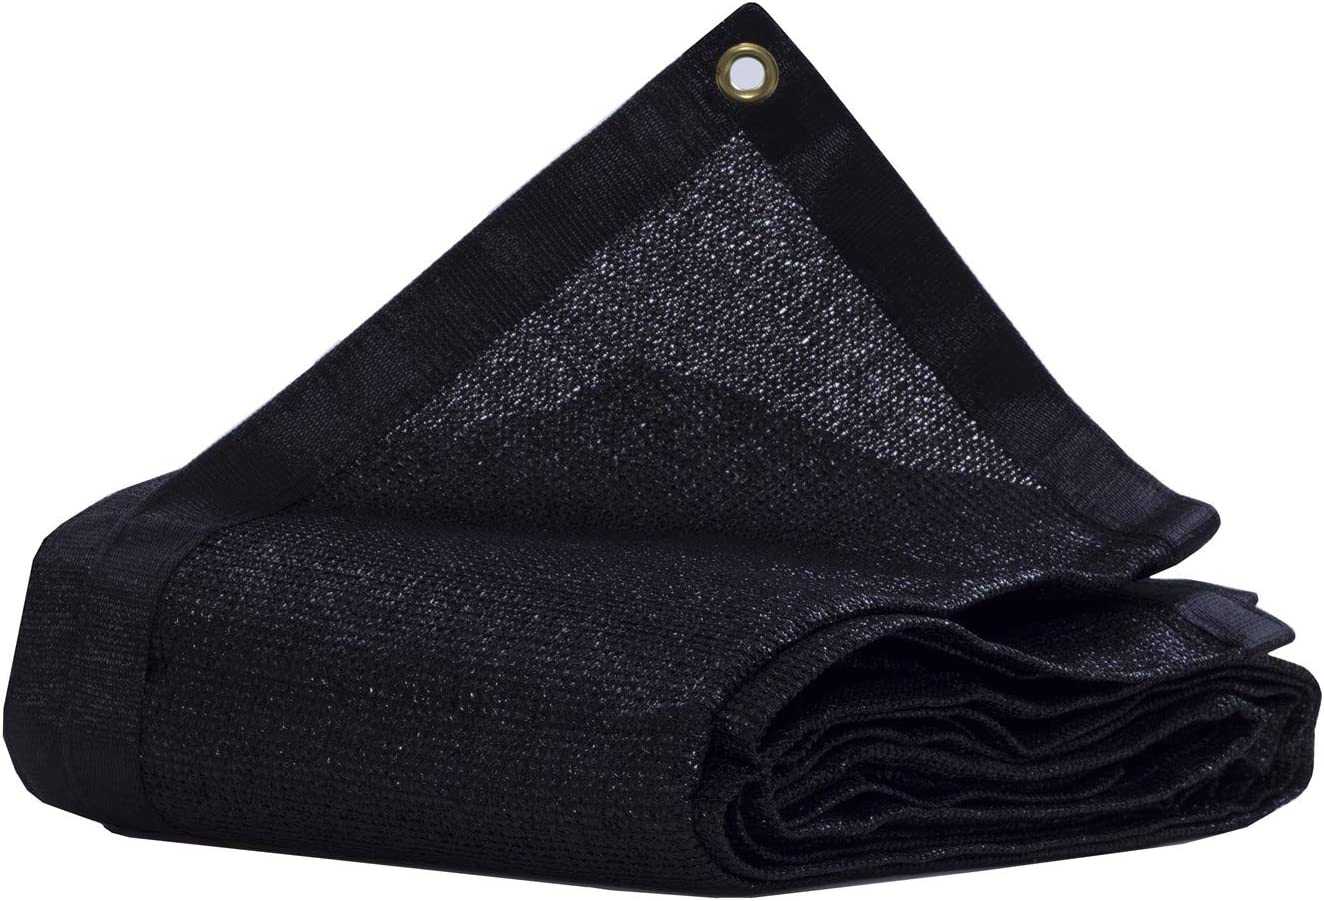 JTsuncover- 90% Heavy Duty Shade Cloth Mesh Sun Block Fabric - with Grommets -Black 12 ft x 6 ft